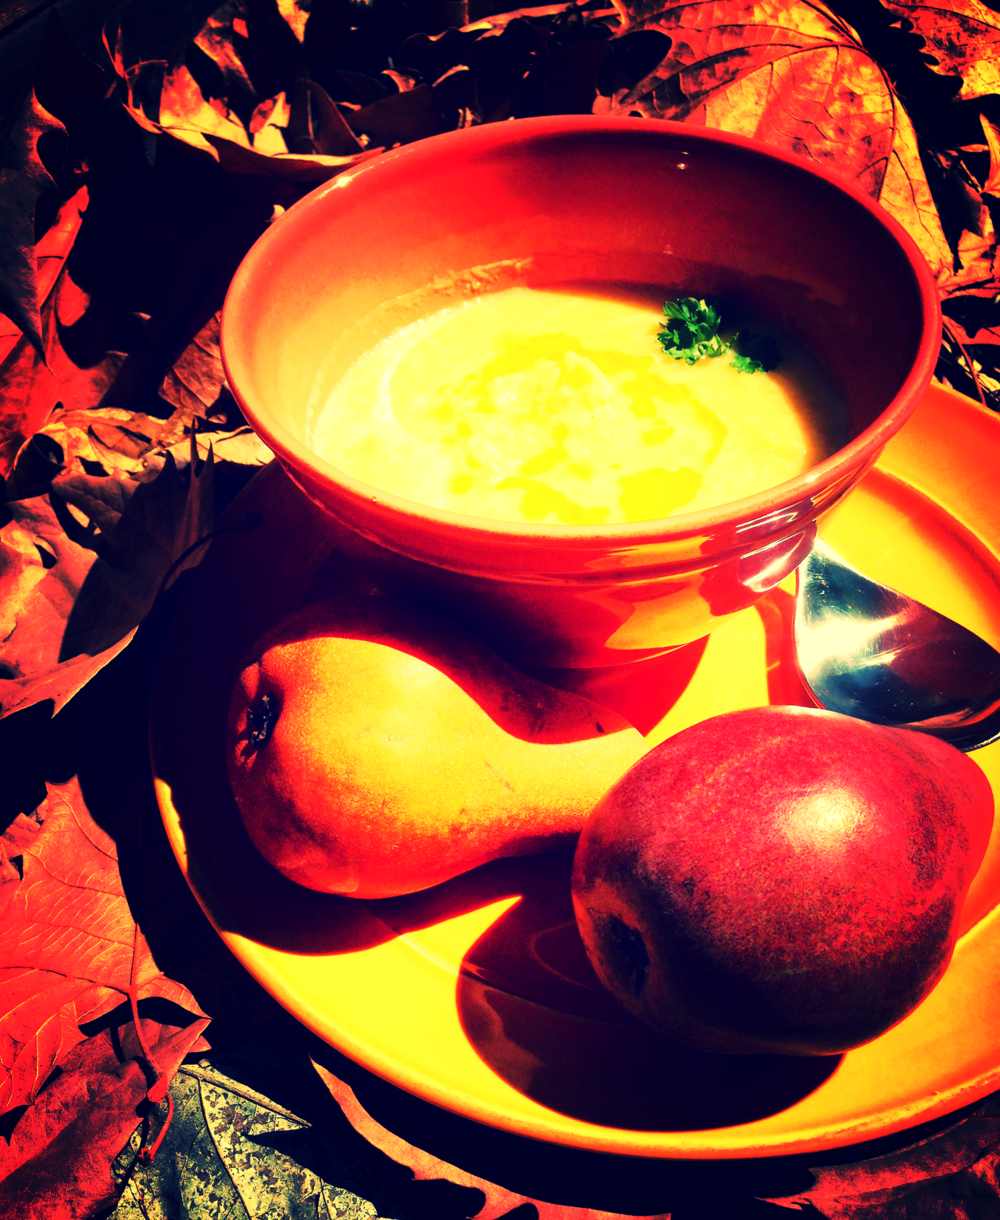 For the Love of Leeks Soup served with Bosc and Red Anjou pears.